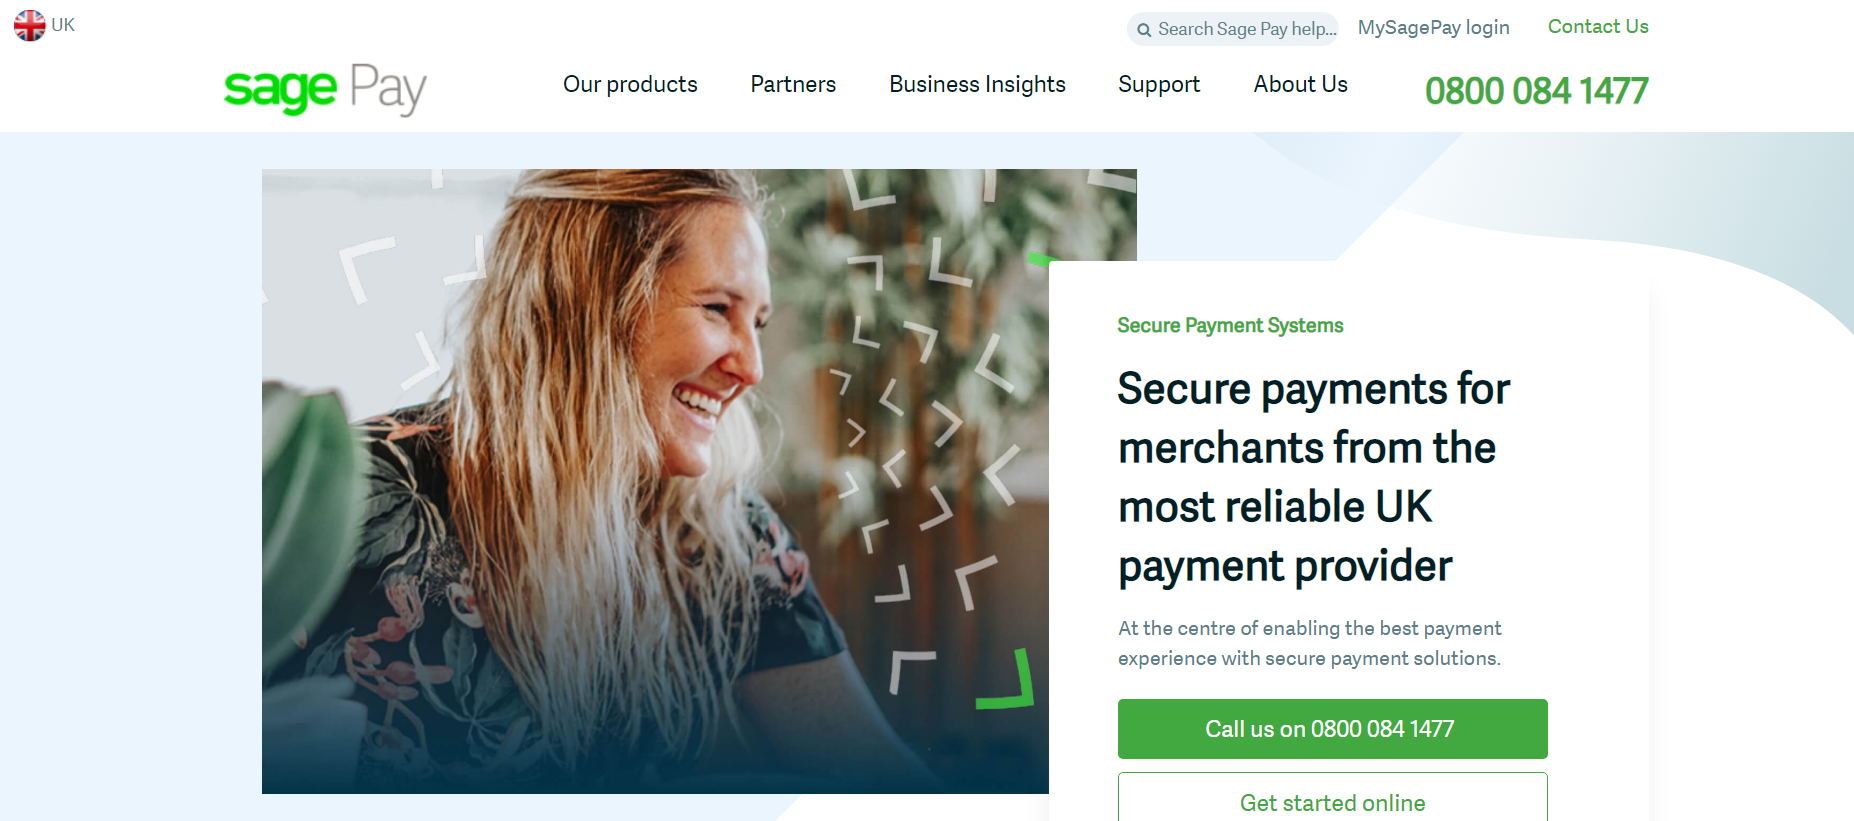 Sagepay Merchant Accounts Review - Perfect for SMEs 1